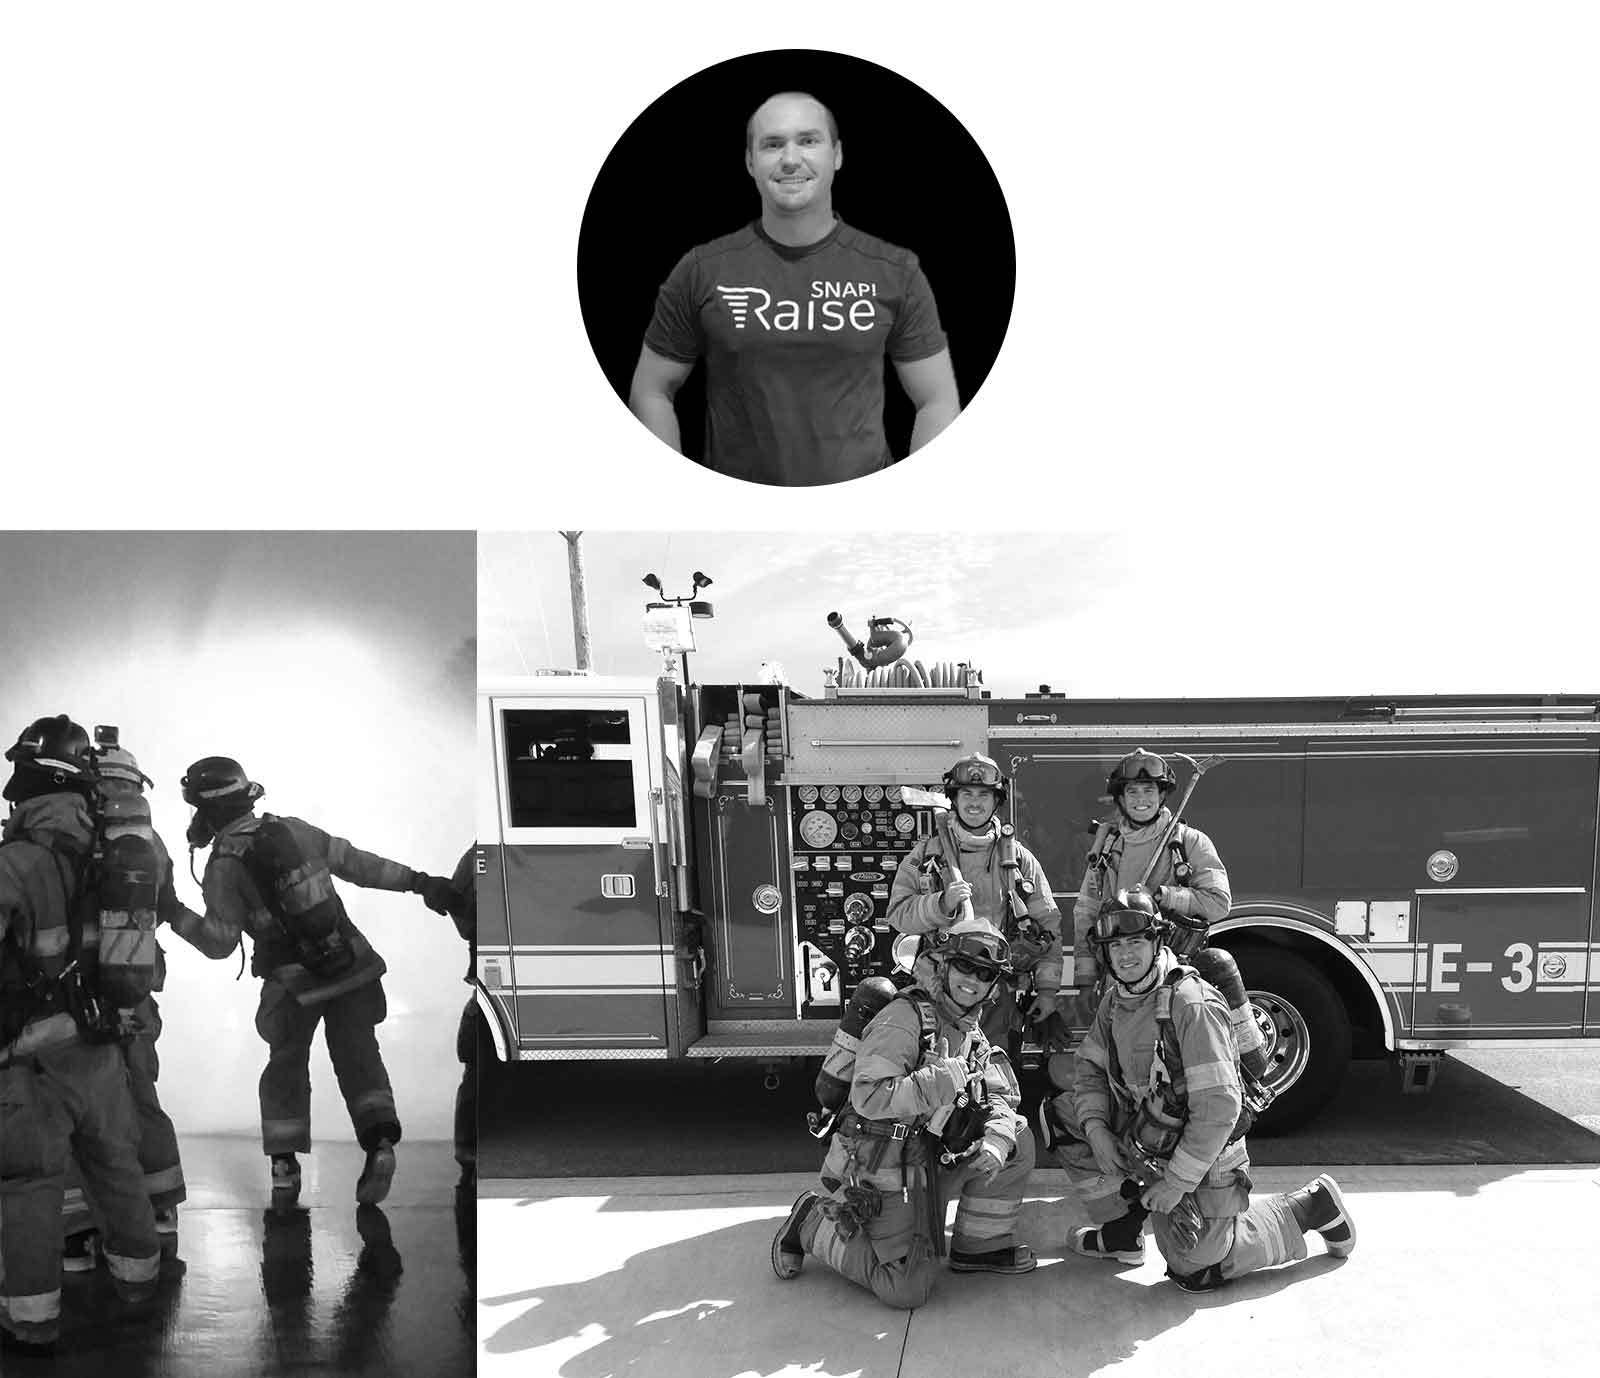 Image-in-blog-post_Casey-ODonnell-Firefighter